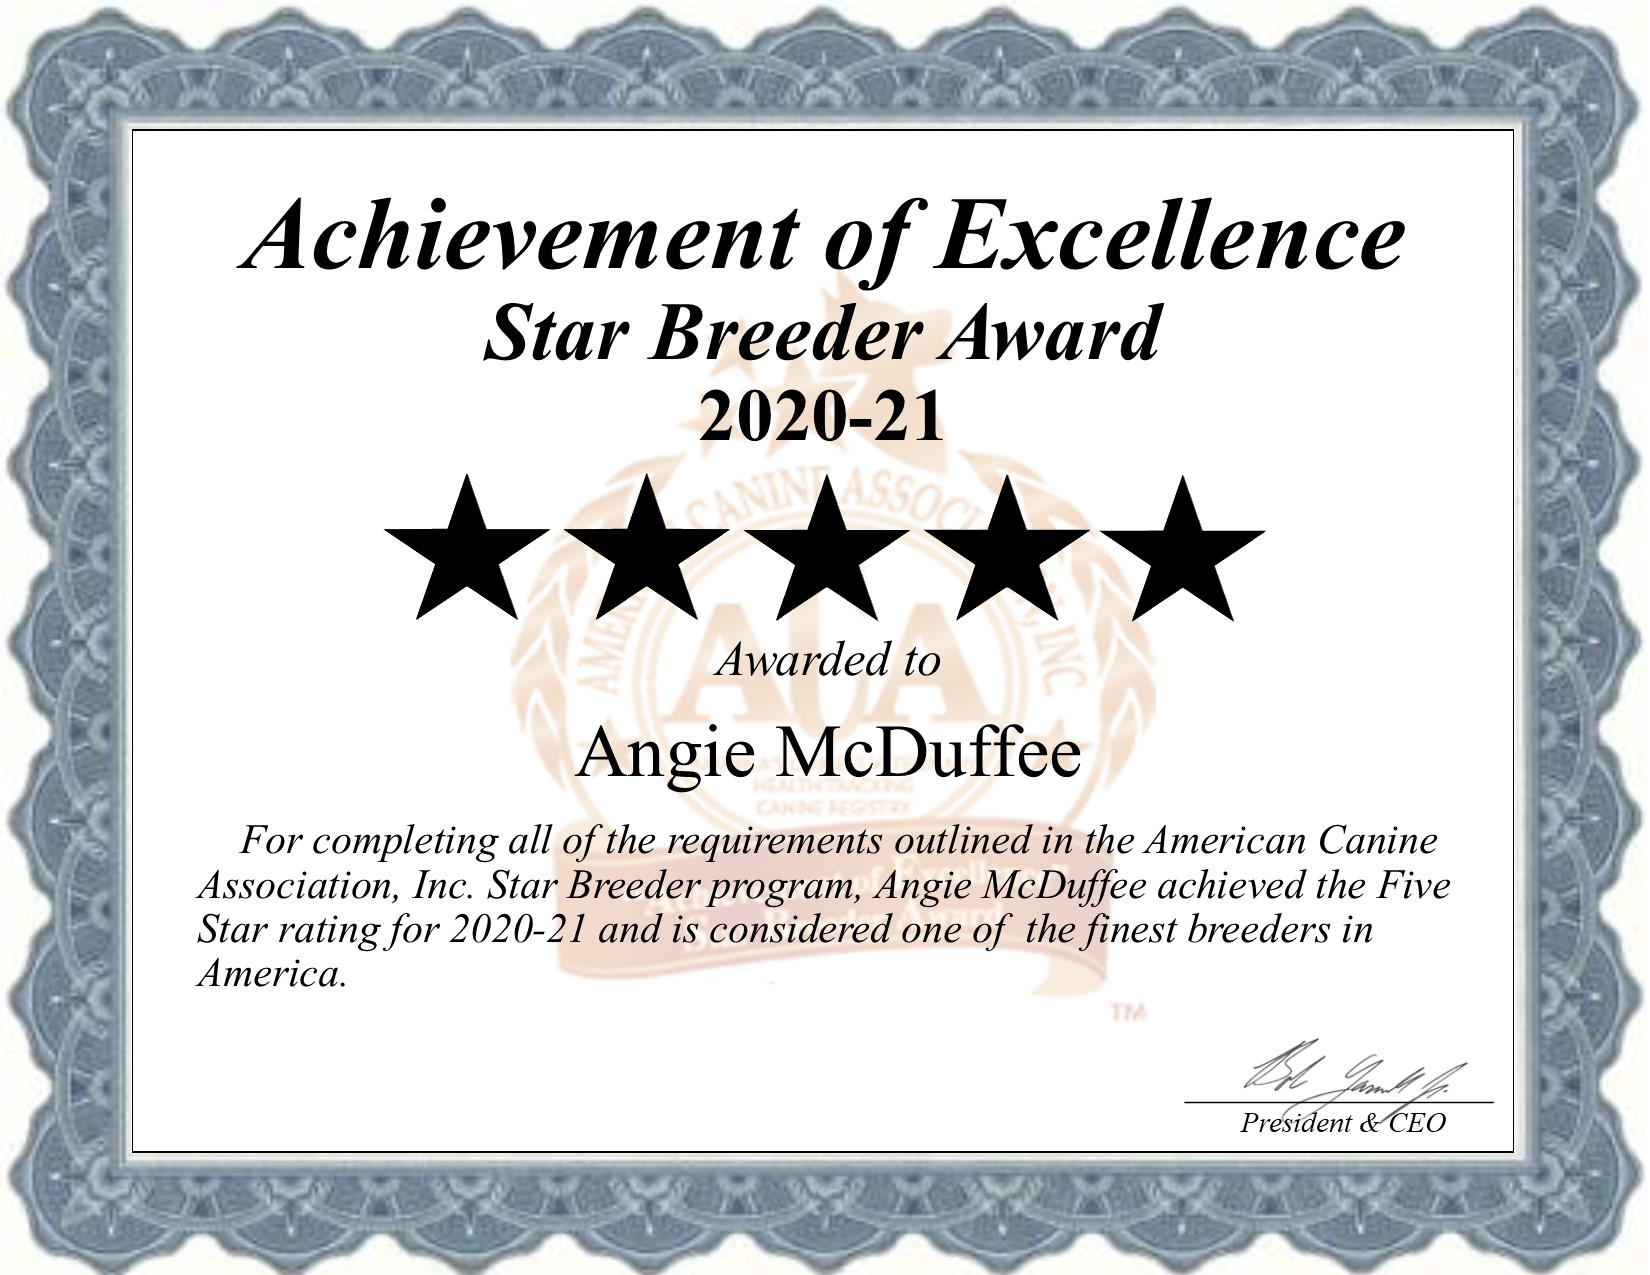 angie, mcduffee, dog, breeder, certificate, angie-mcduffee, dog-breeder, crushing, mn, minnesota, puppy, dog, kennels, mill, puppymill, usda, 5-star, ACA, ICA, registered, show handler, Yorkshire, Terrier, 41-A-0484, 41A0484